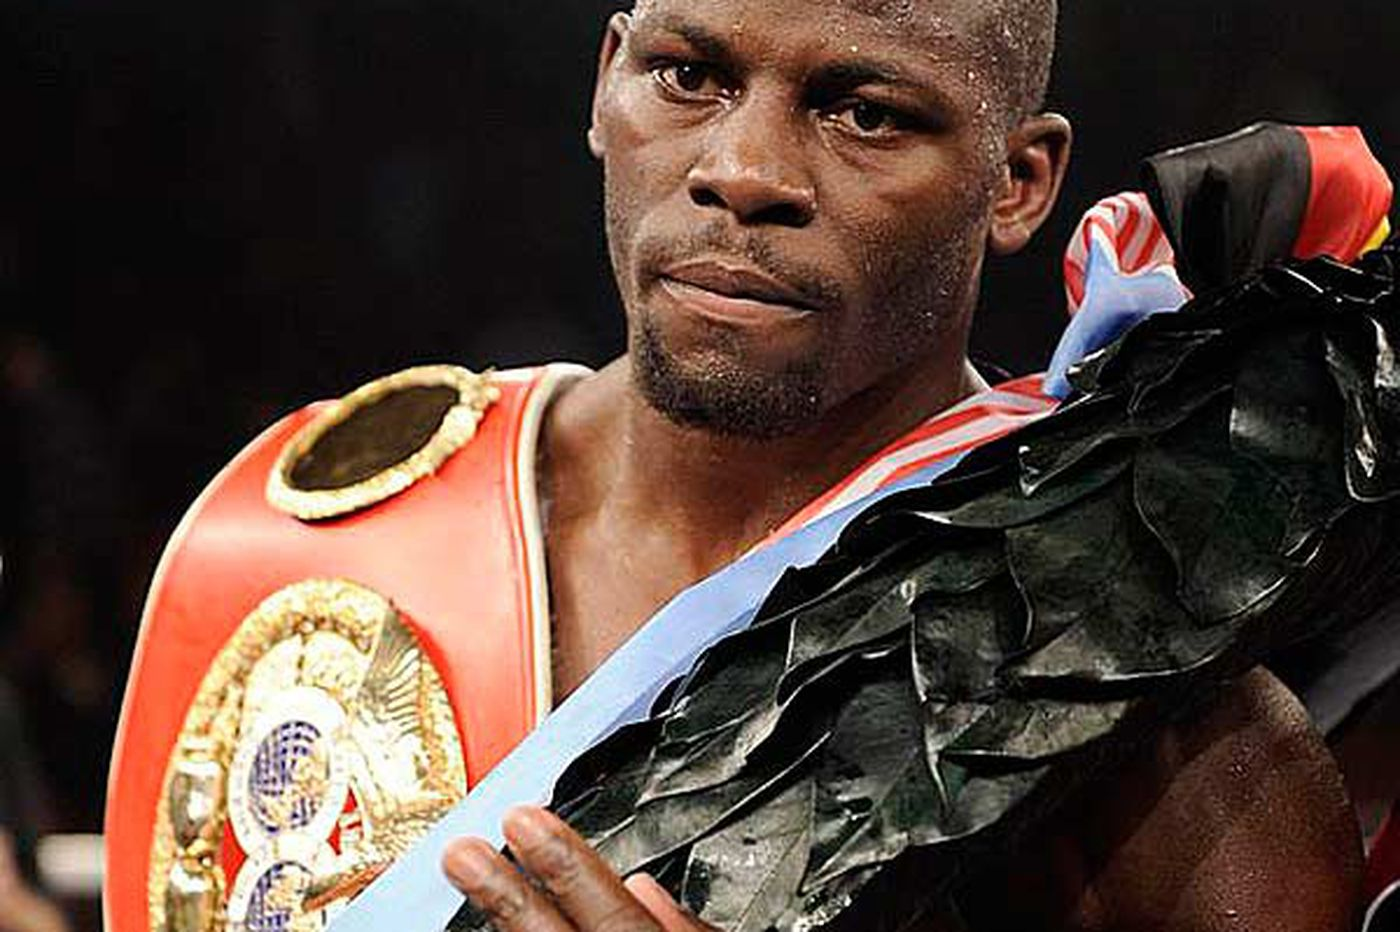 Philly heavyweight Steve Cunningham takes on Poland's Tomasz Adamek on Saturday